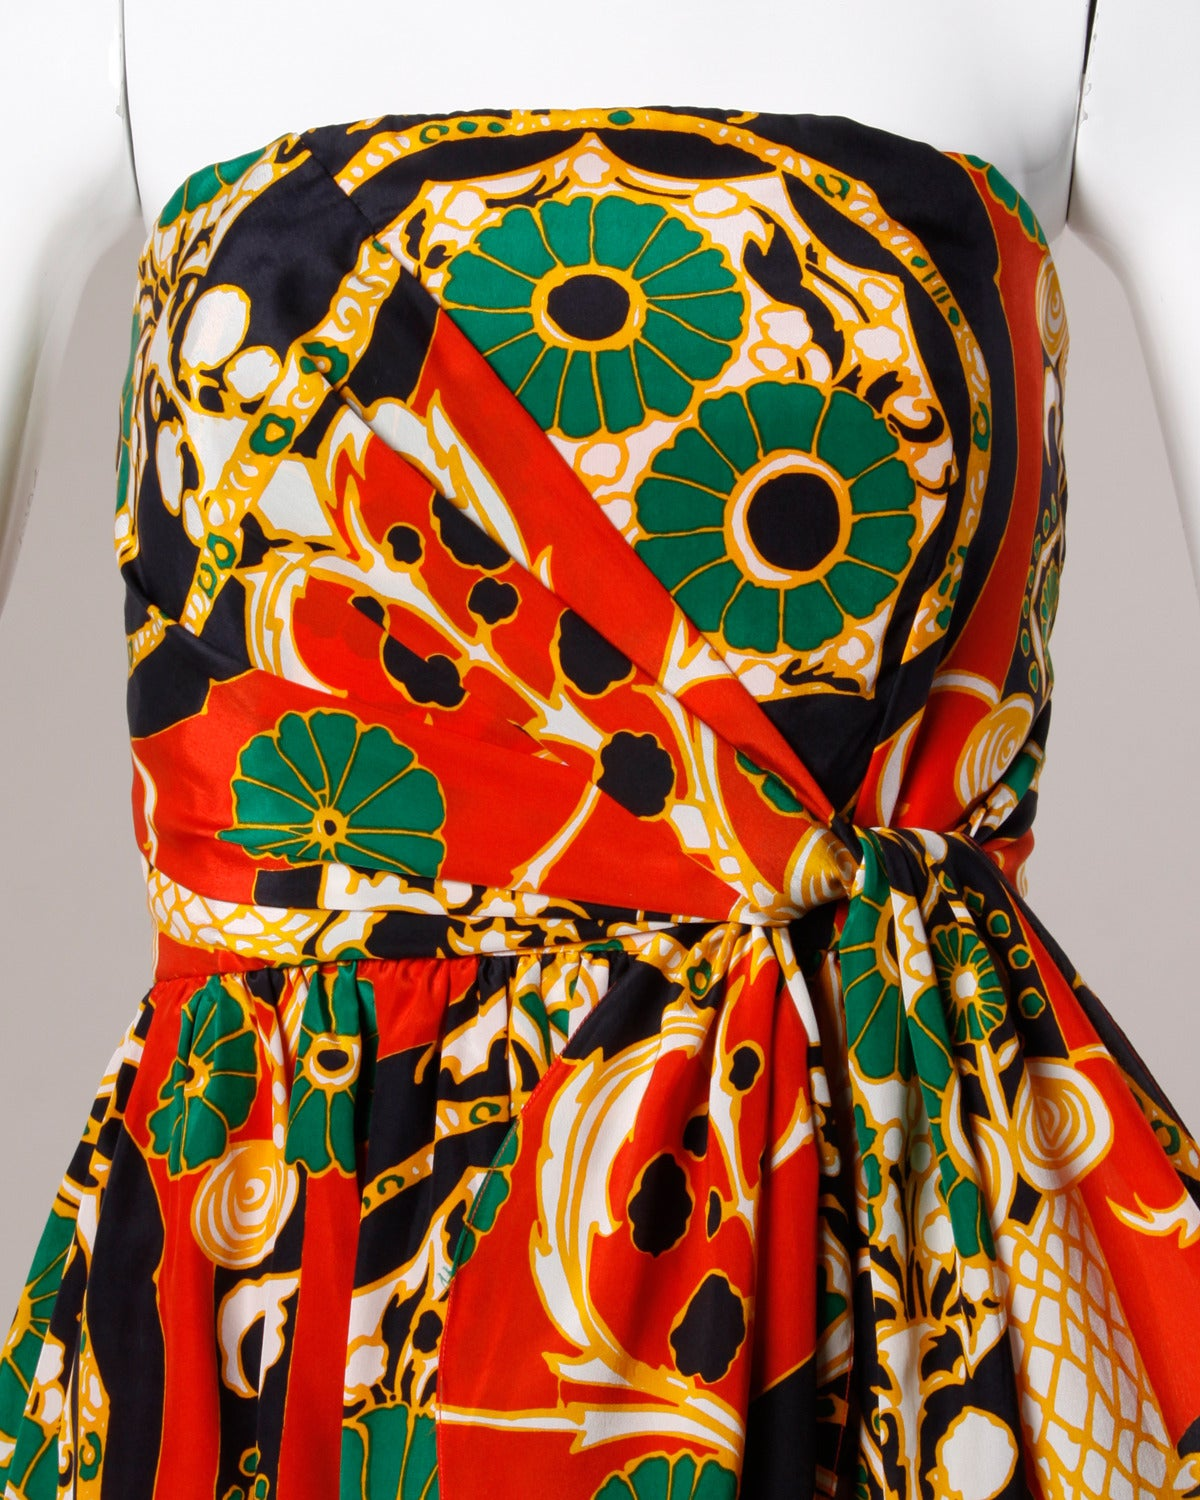 Donald Brooks Vintage 1970s Asian-Inspired Silk Print Gown + Cape Ensemble In Excellent Condition For Sale In Sparks, NV